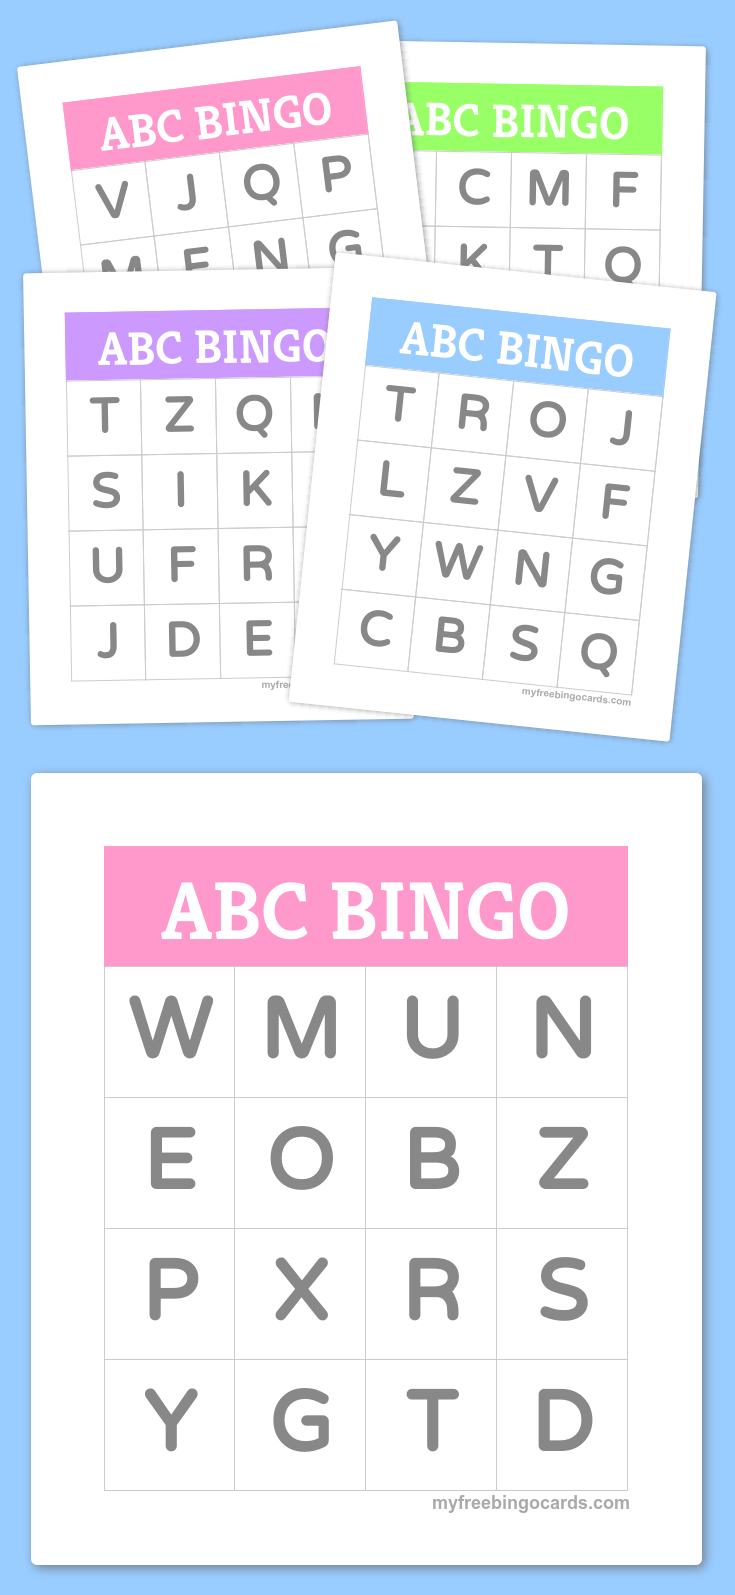 photo relating to Abc Bingo Printable referred to as Totally free Printable Bingo Playing cards Instruction Cost-free printable